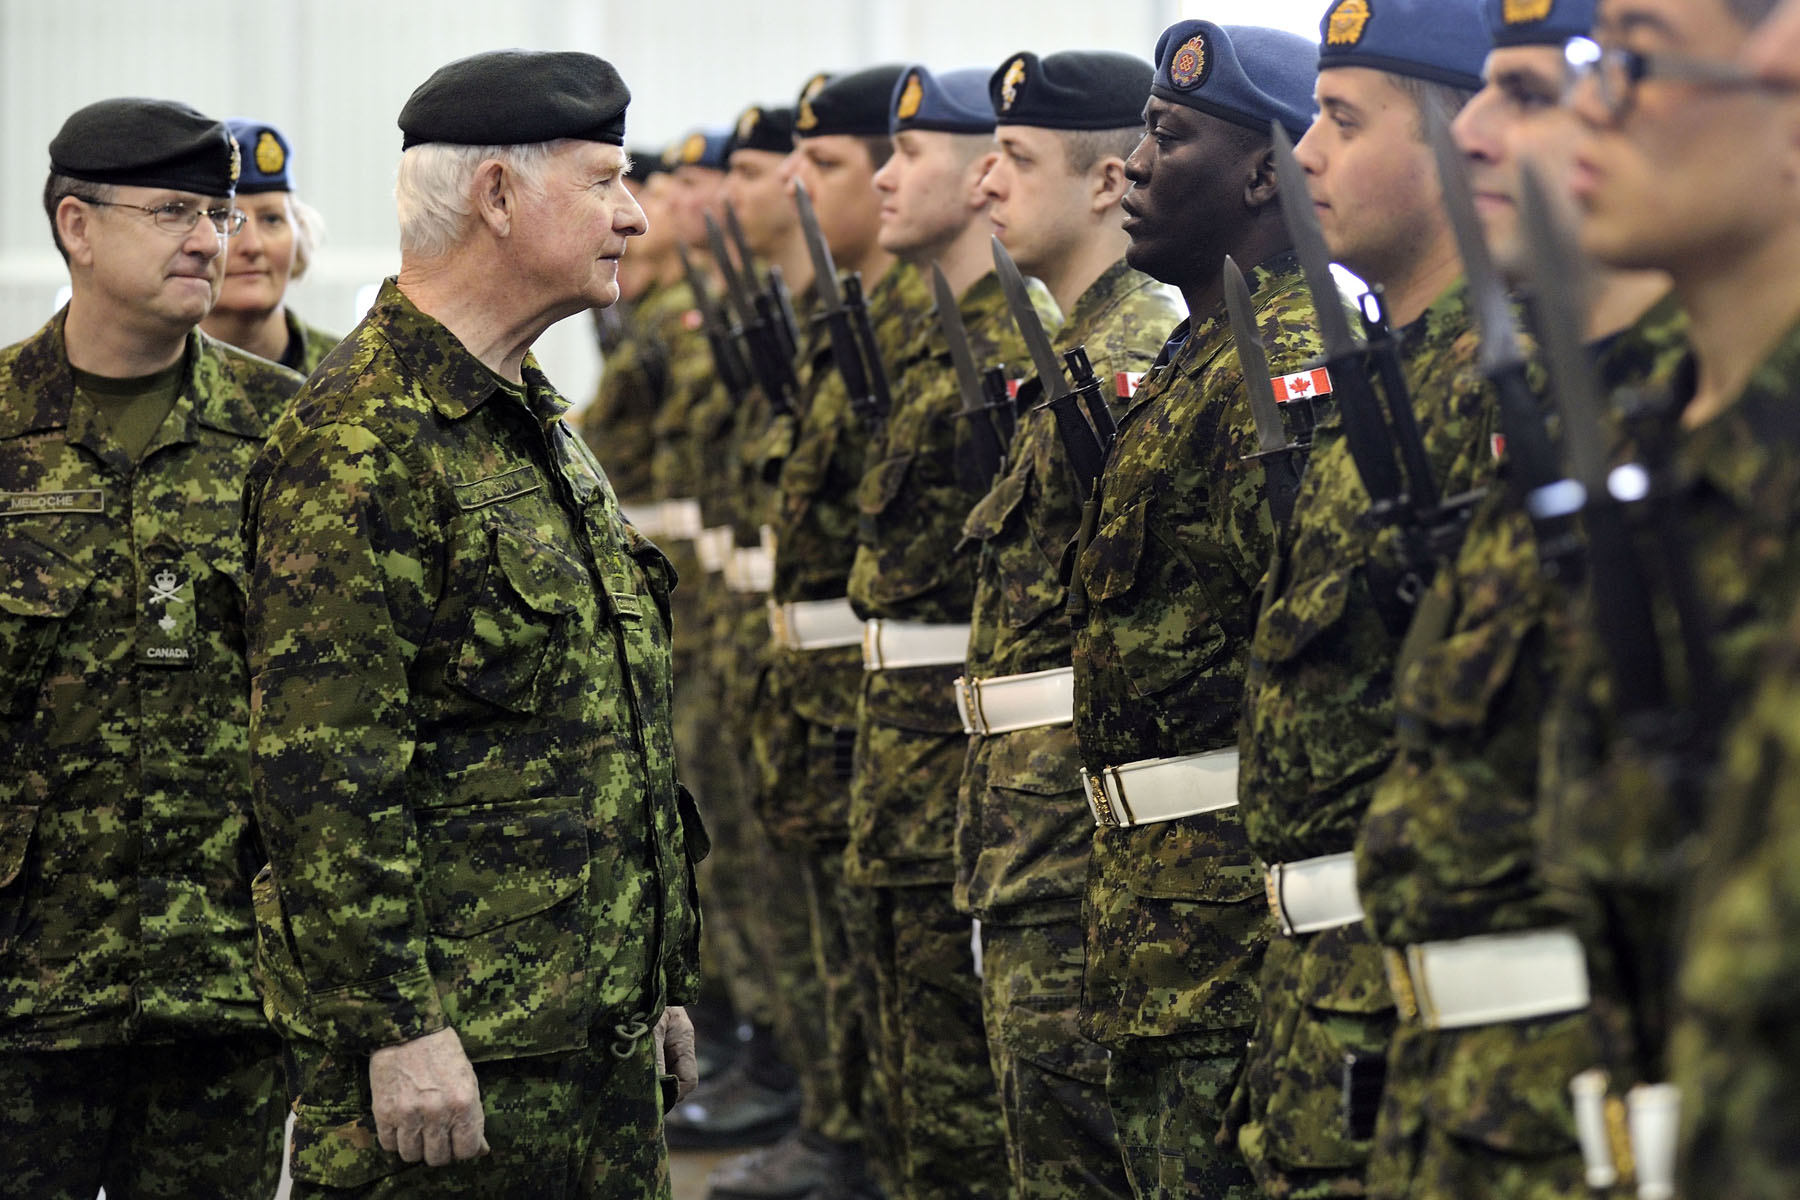 The Governor General Of Canada Gt Photos Gt Visit To Cfb Borden